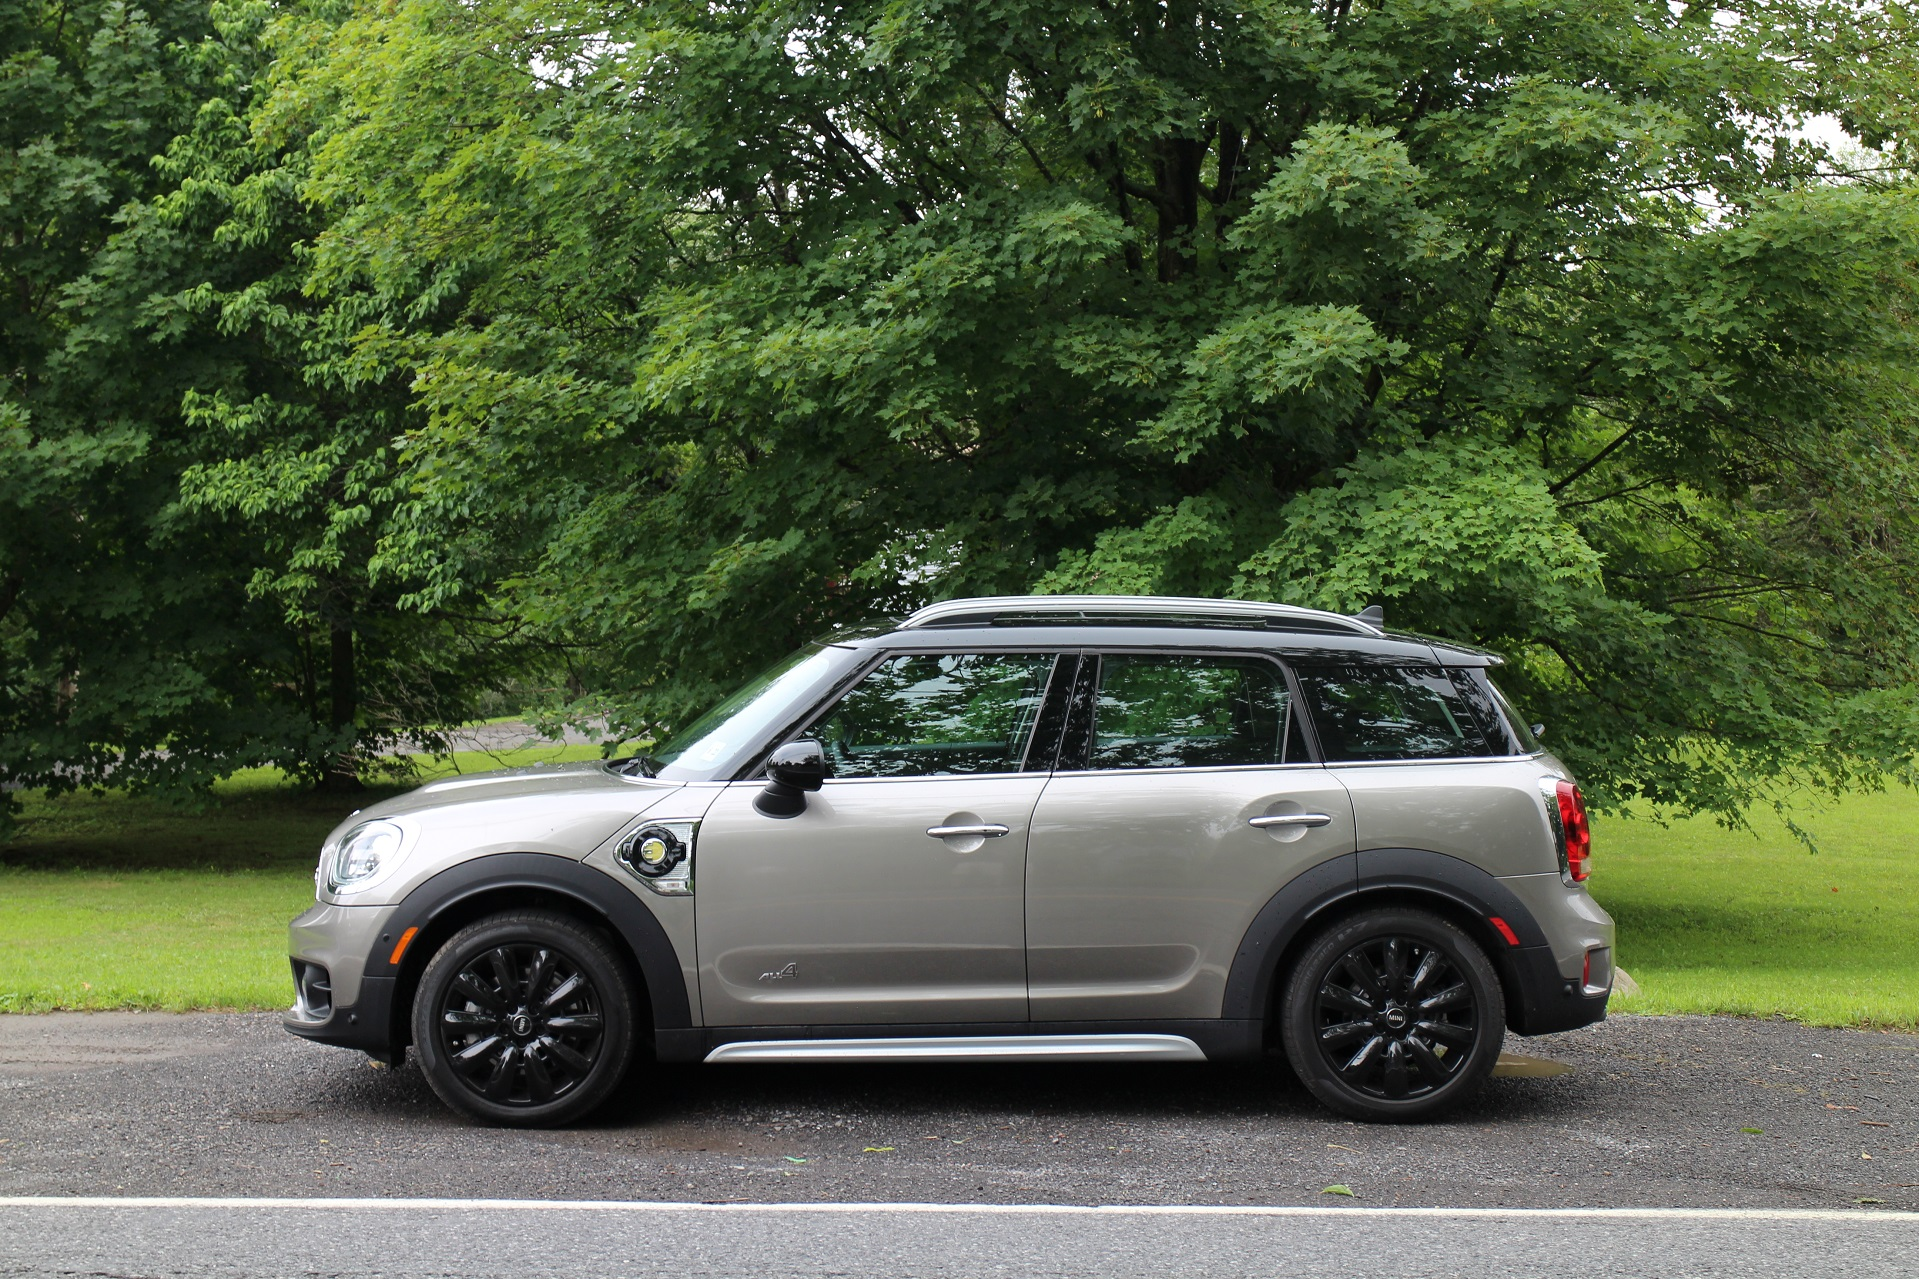 2018 mini cooper s e countryman all4 review of plug in hybrid page 2. Black Bedroom Furniture Sets. Home Design Ideas